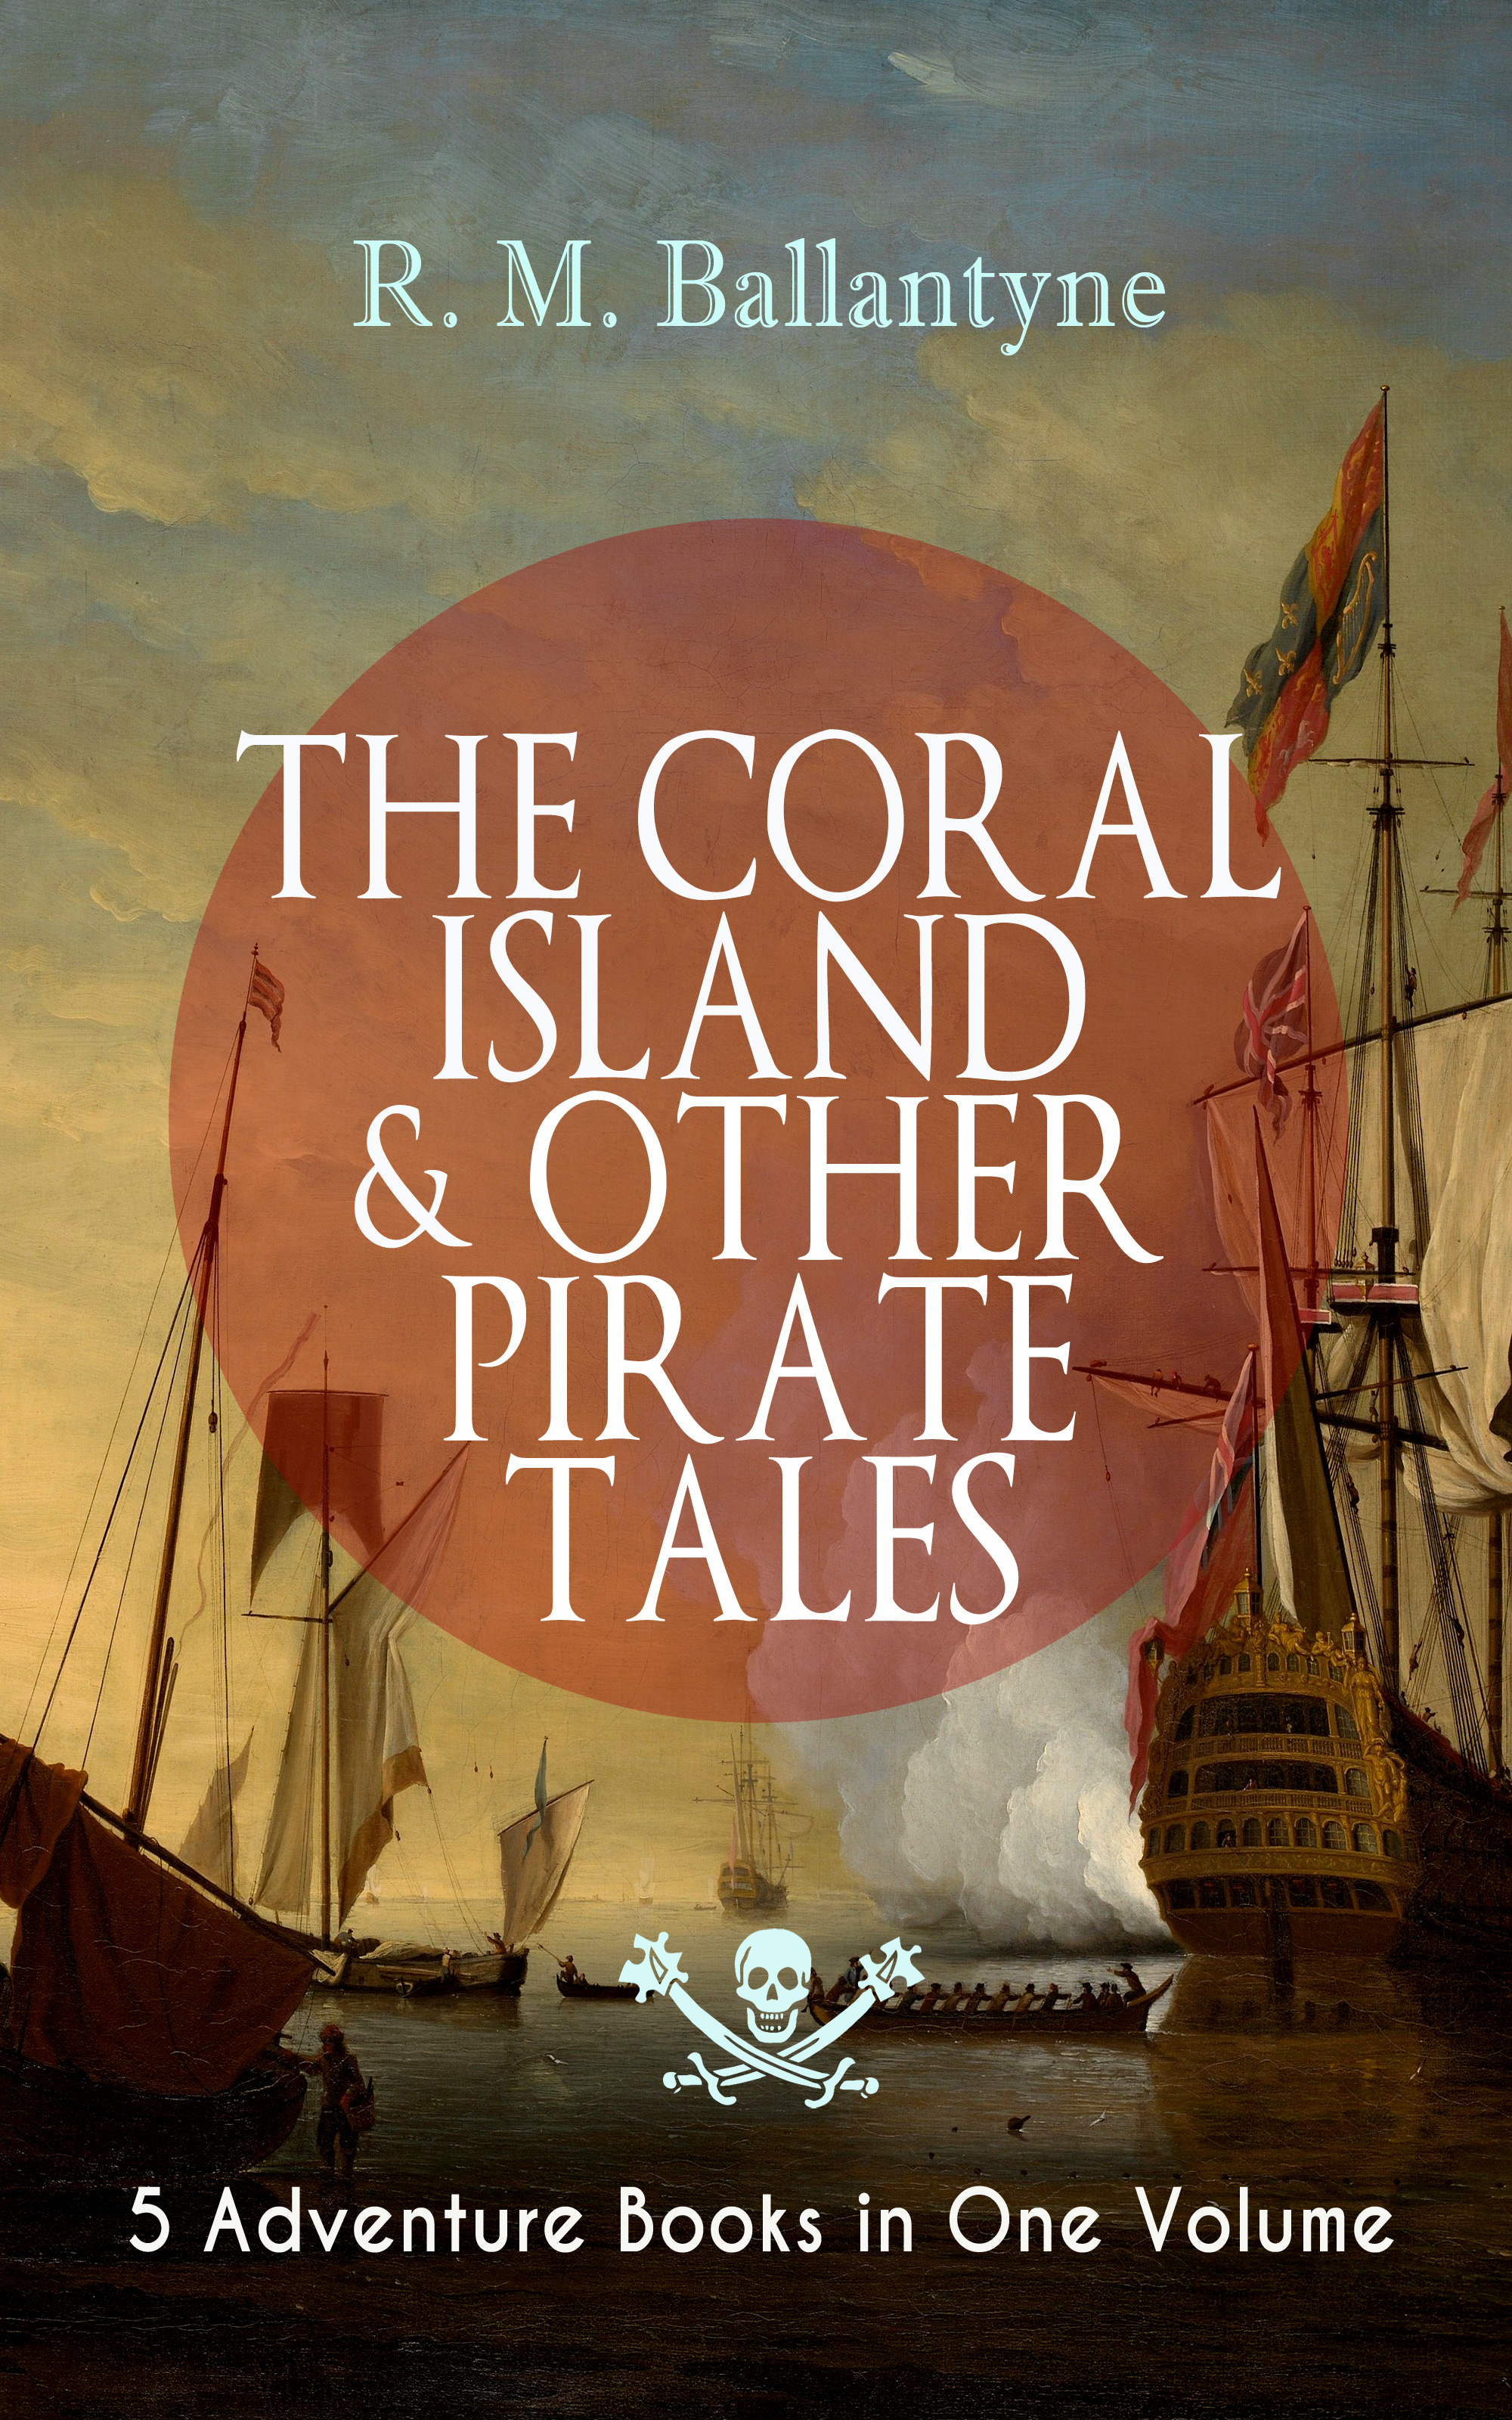 R. M. Ballantyne THE CORAL ISLAND & OTHER PIRATE TALES – 5 Adventure Books in One Volume